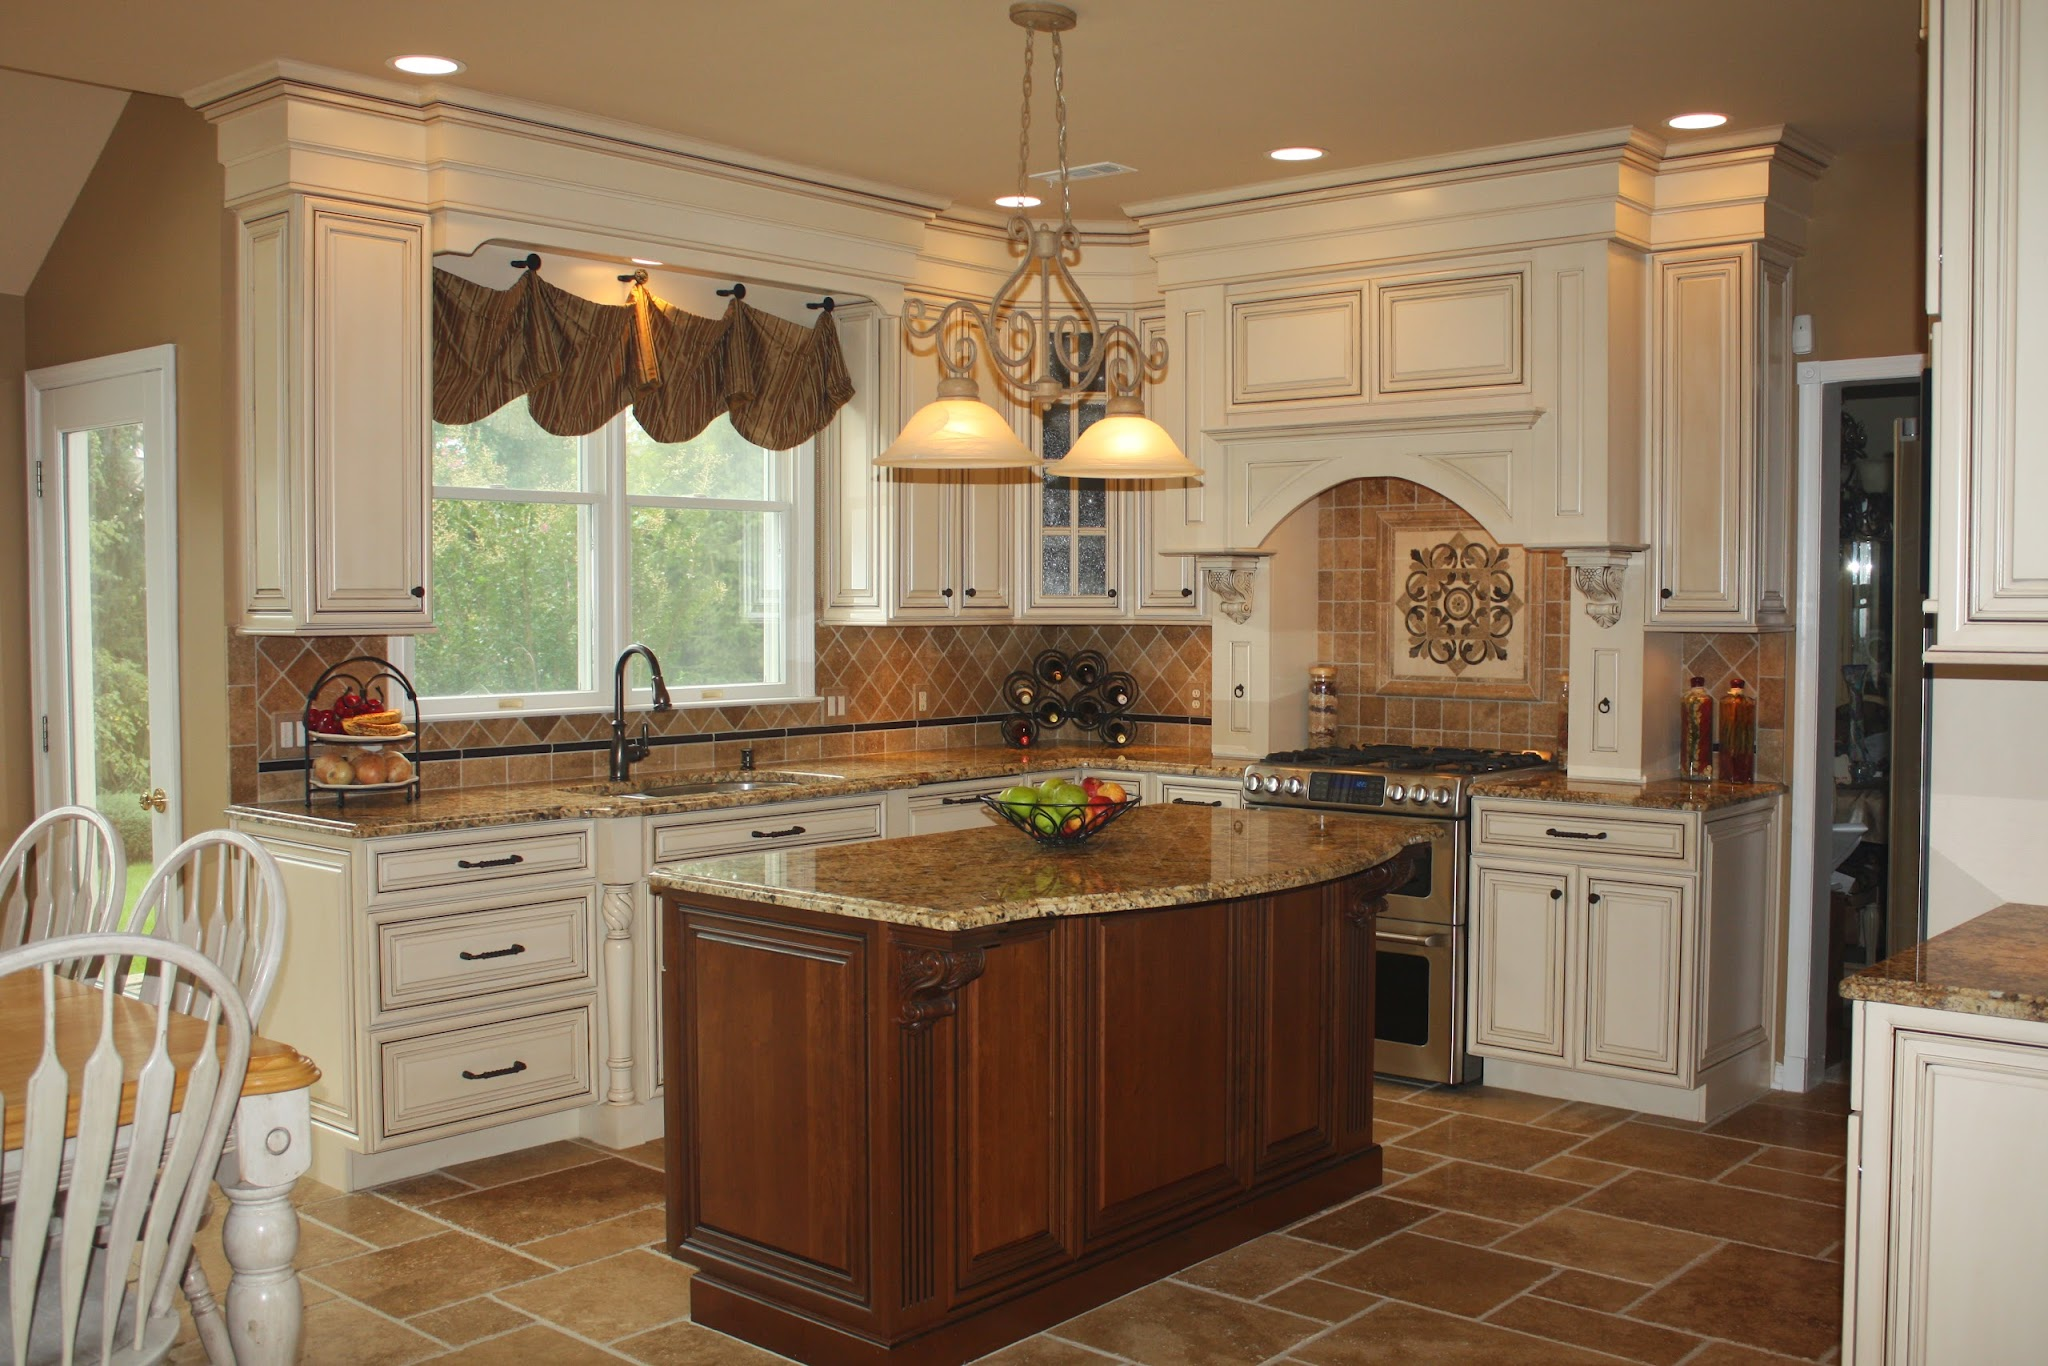 Houzz kitchen dreams house furniture for Kitchen remodel ideas pictures